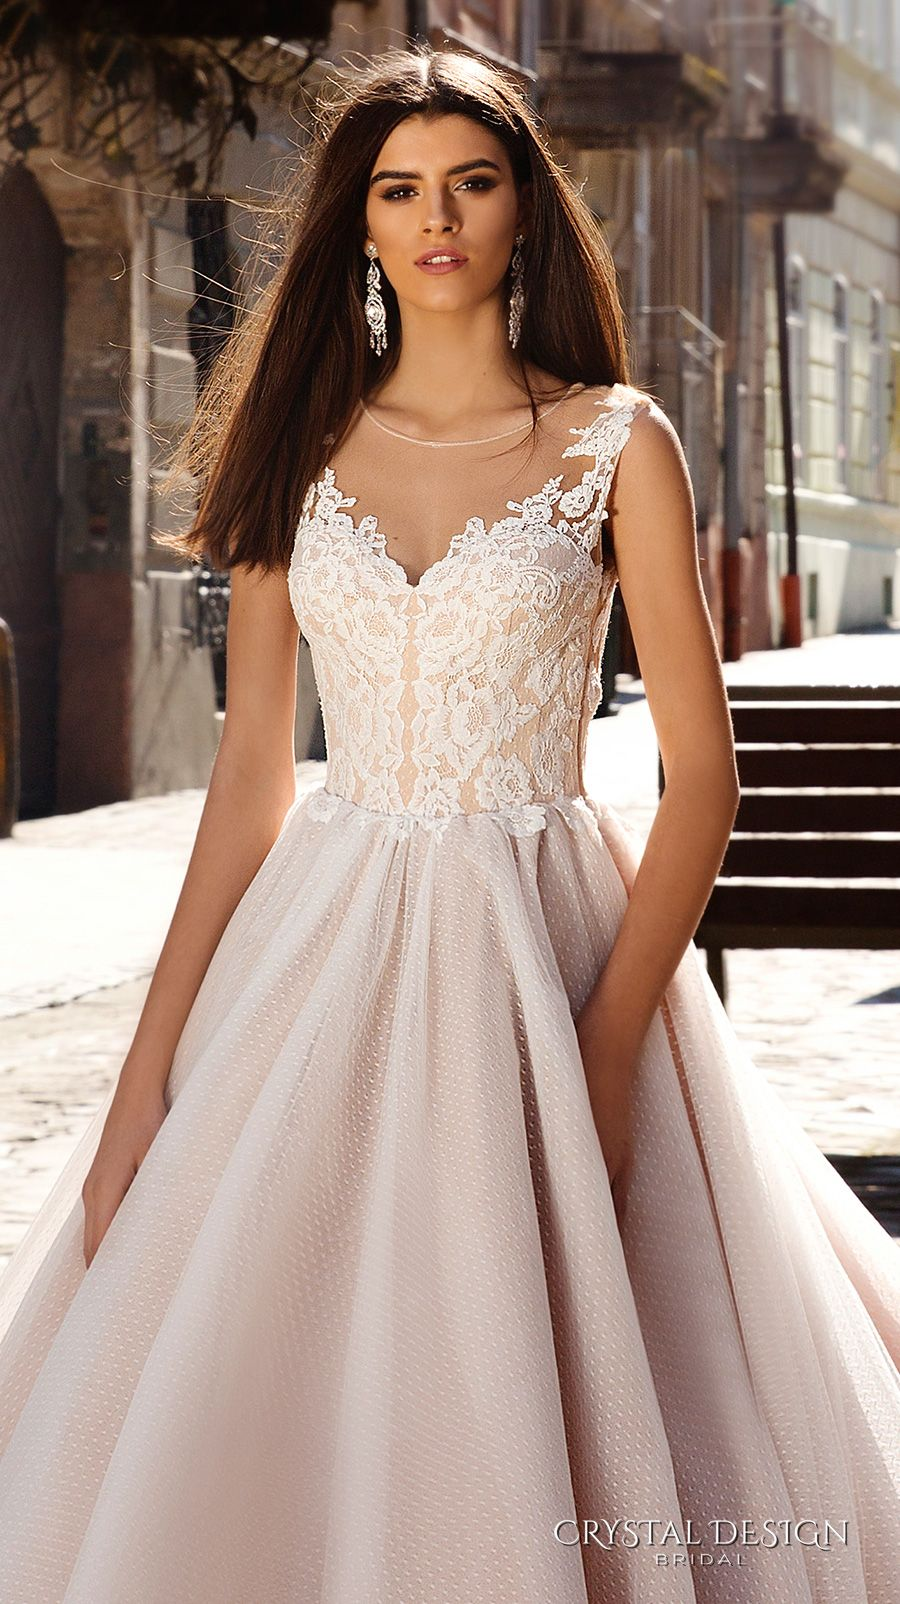 Wedding Dresses With Illusion Bodice : Crystal design wedding dresses chapel train